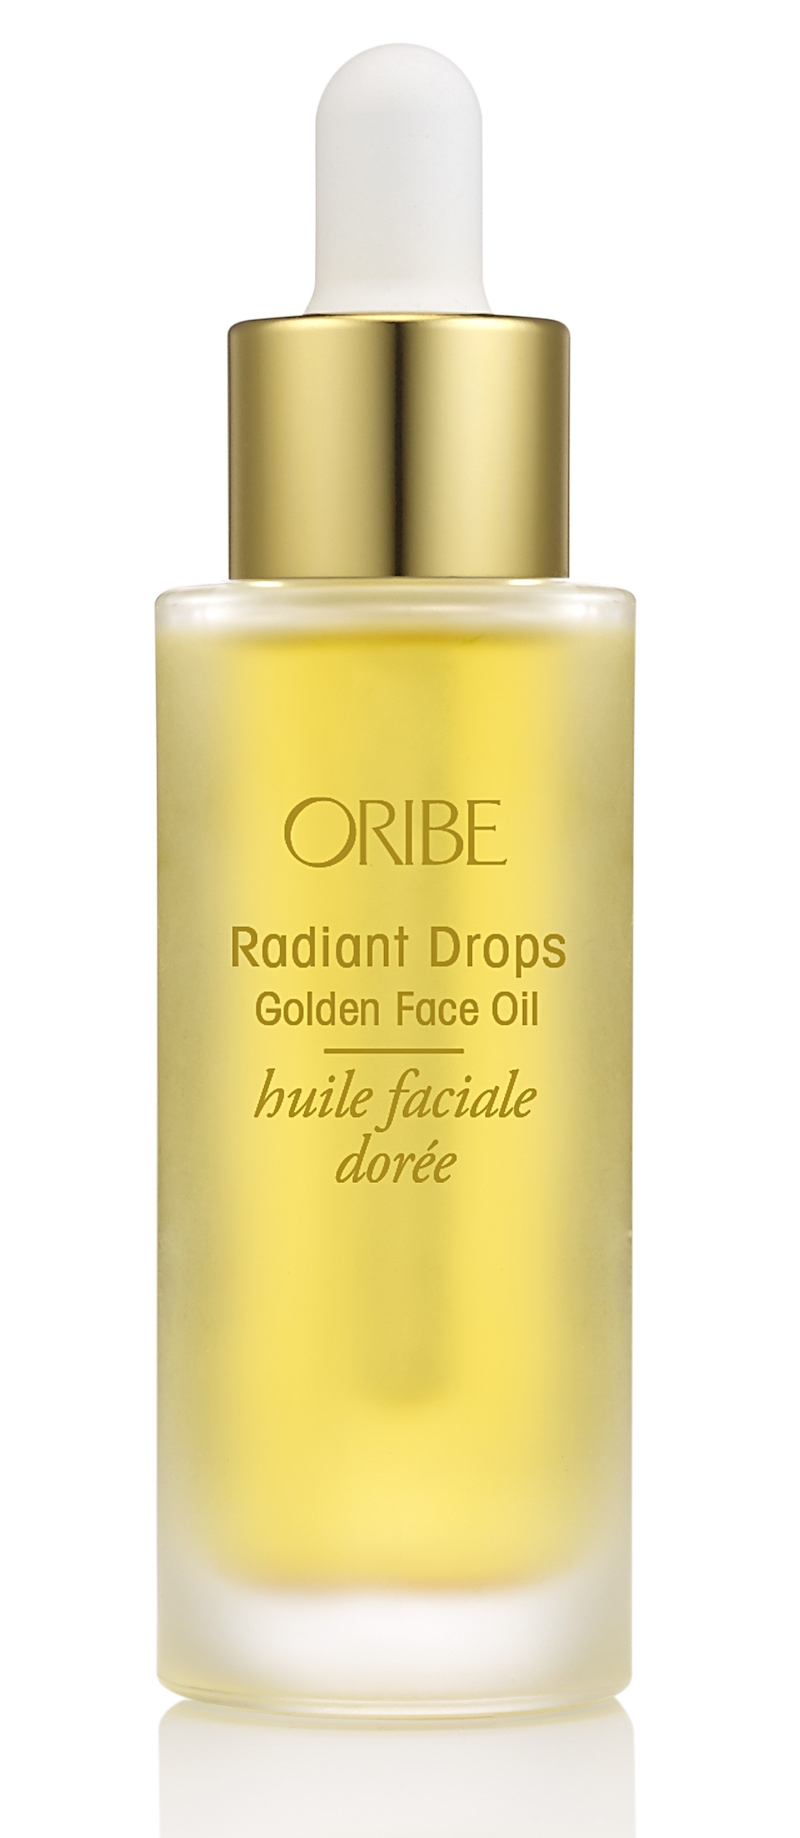 Radiant_Drops_Golden_Face_Oil.jpg